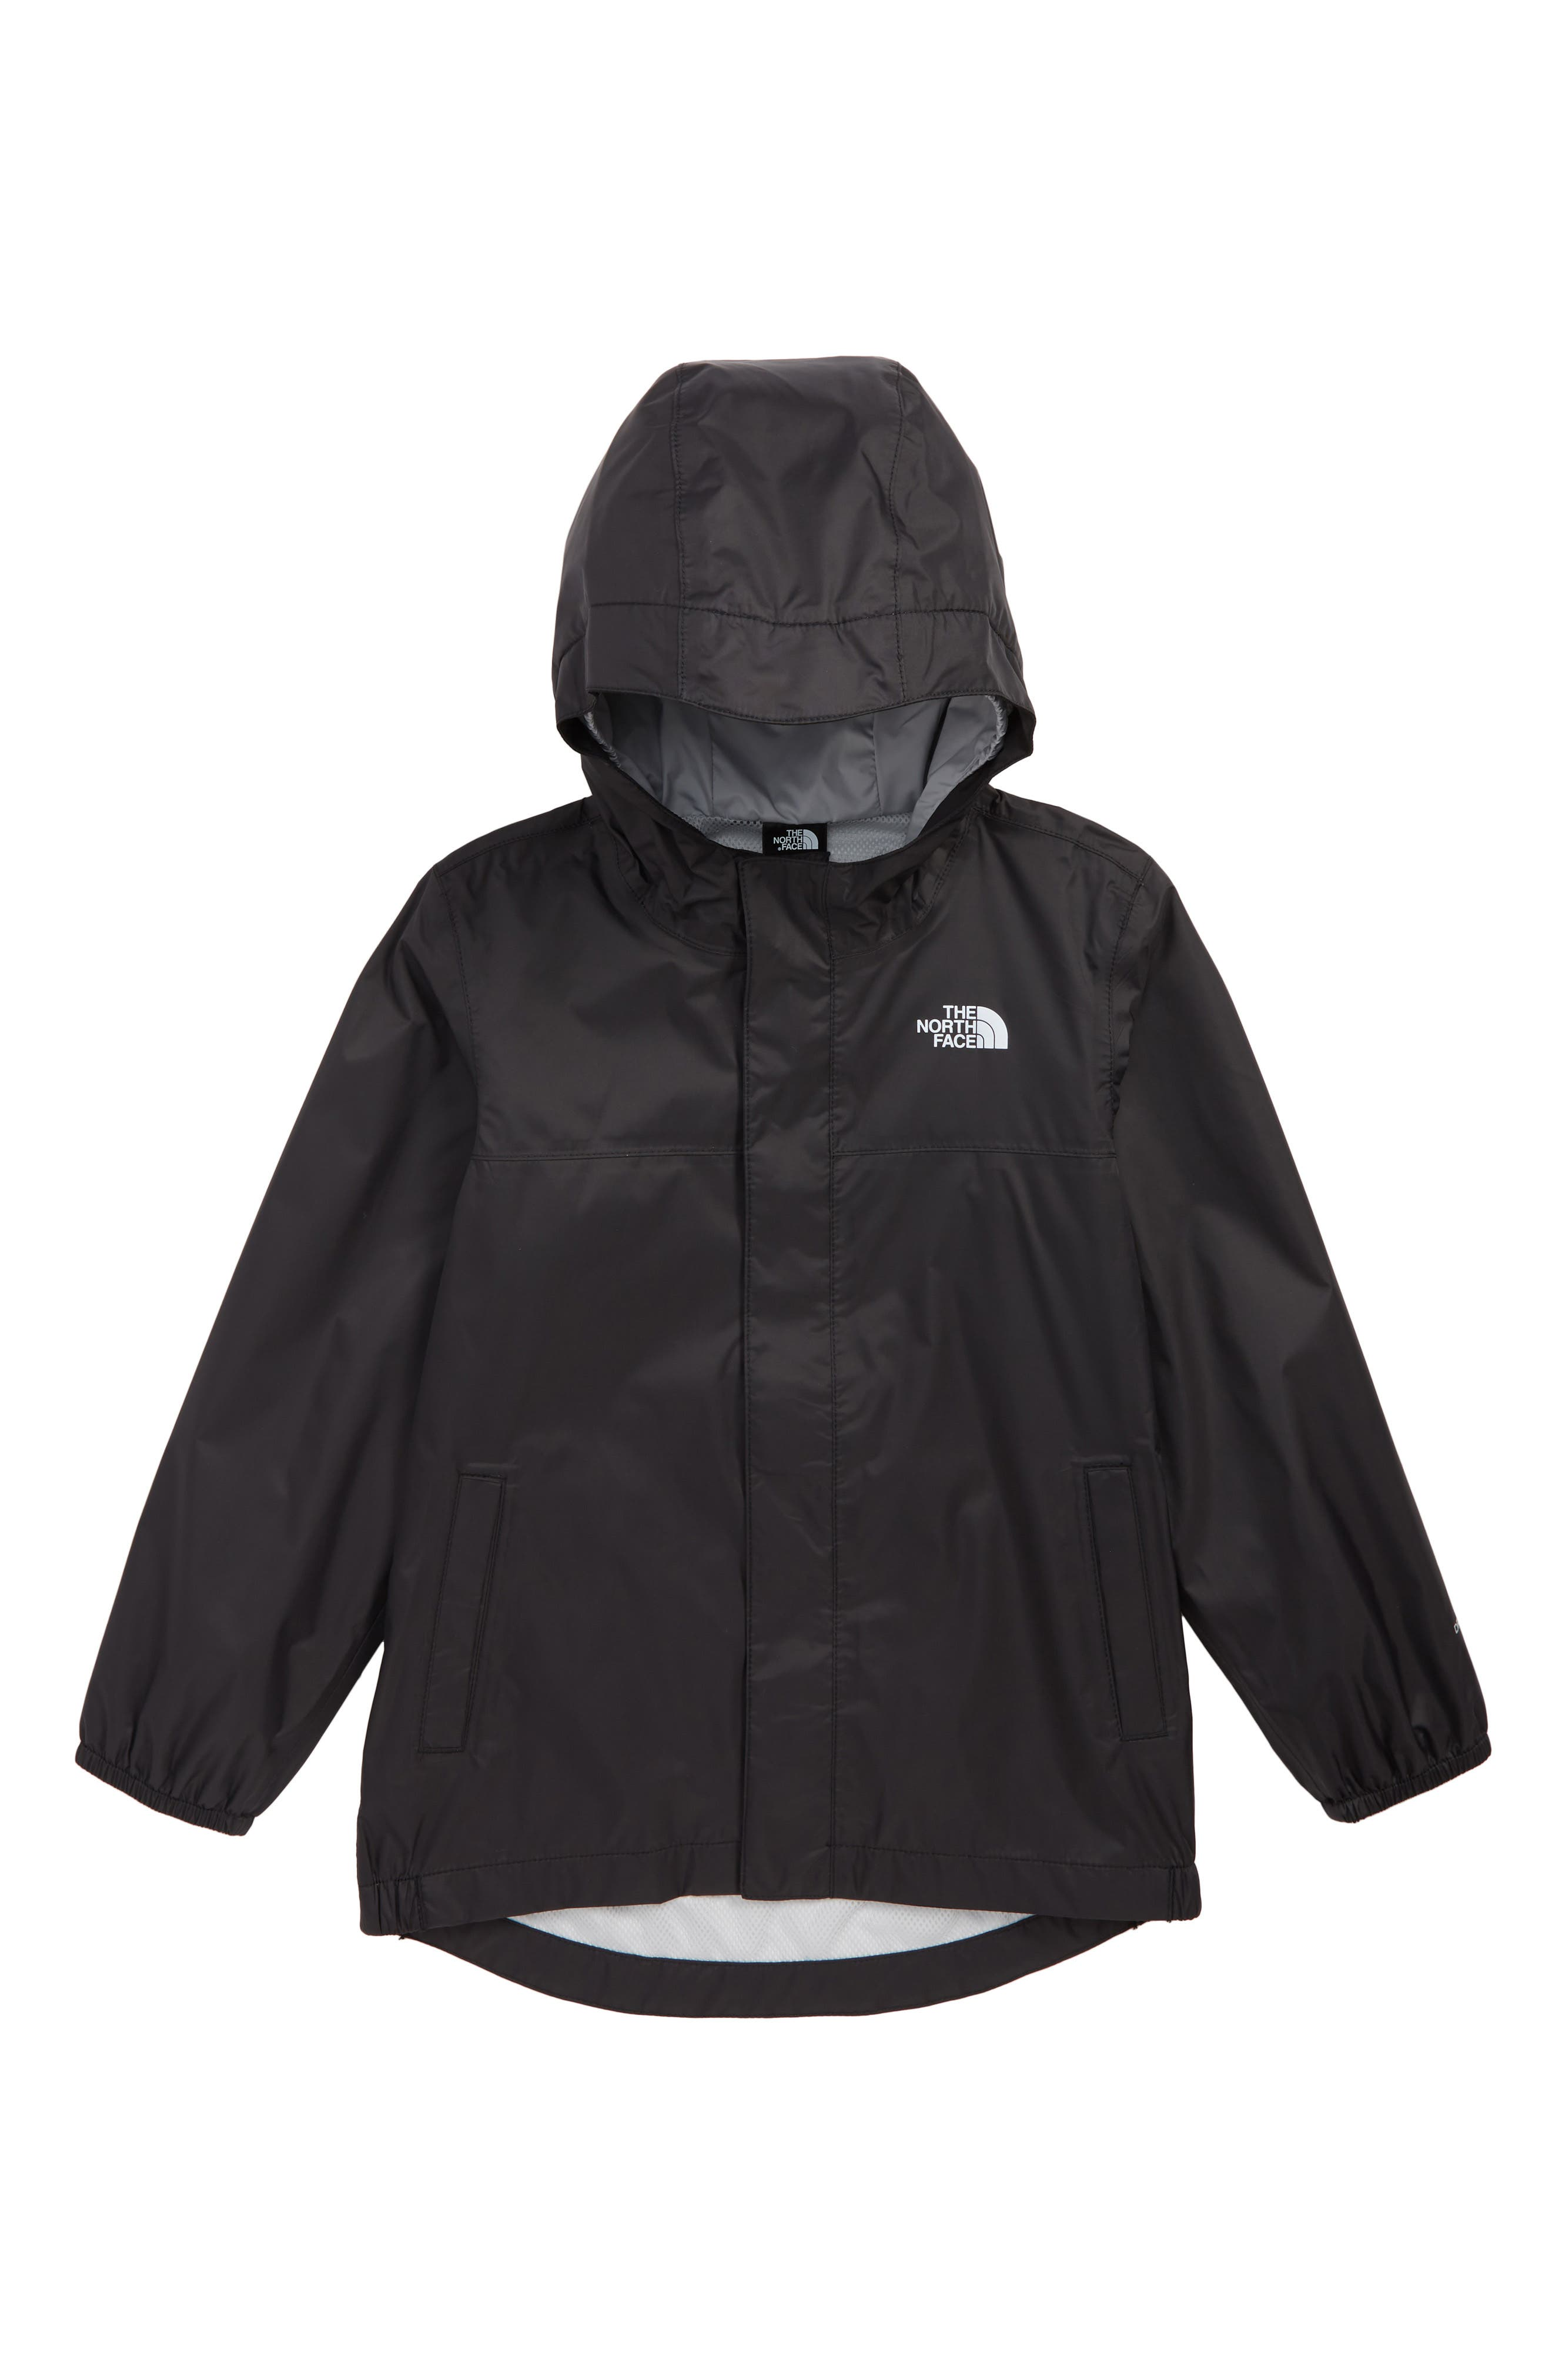 Tailout Hooded Rain Jacket,                         Main,                         color, 001